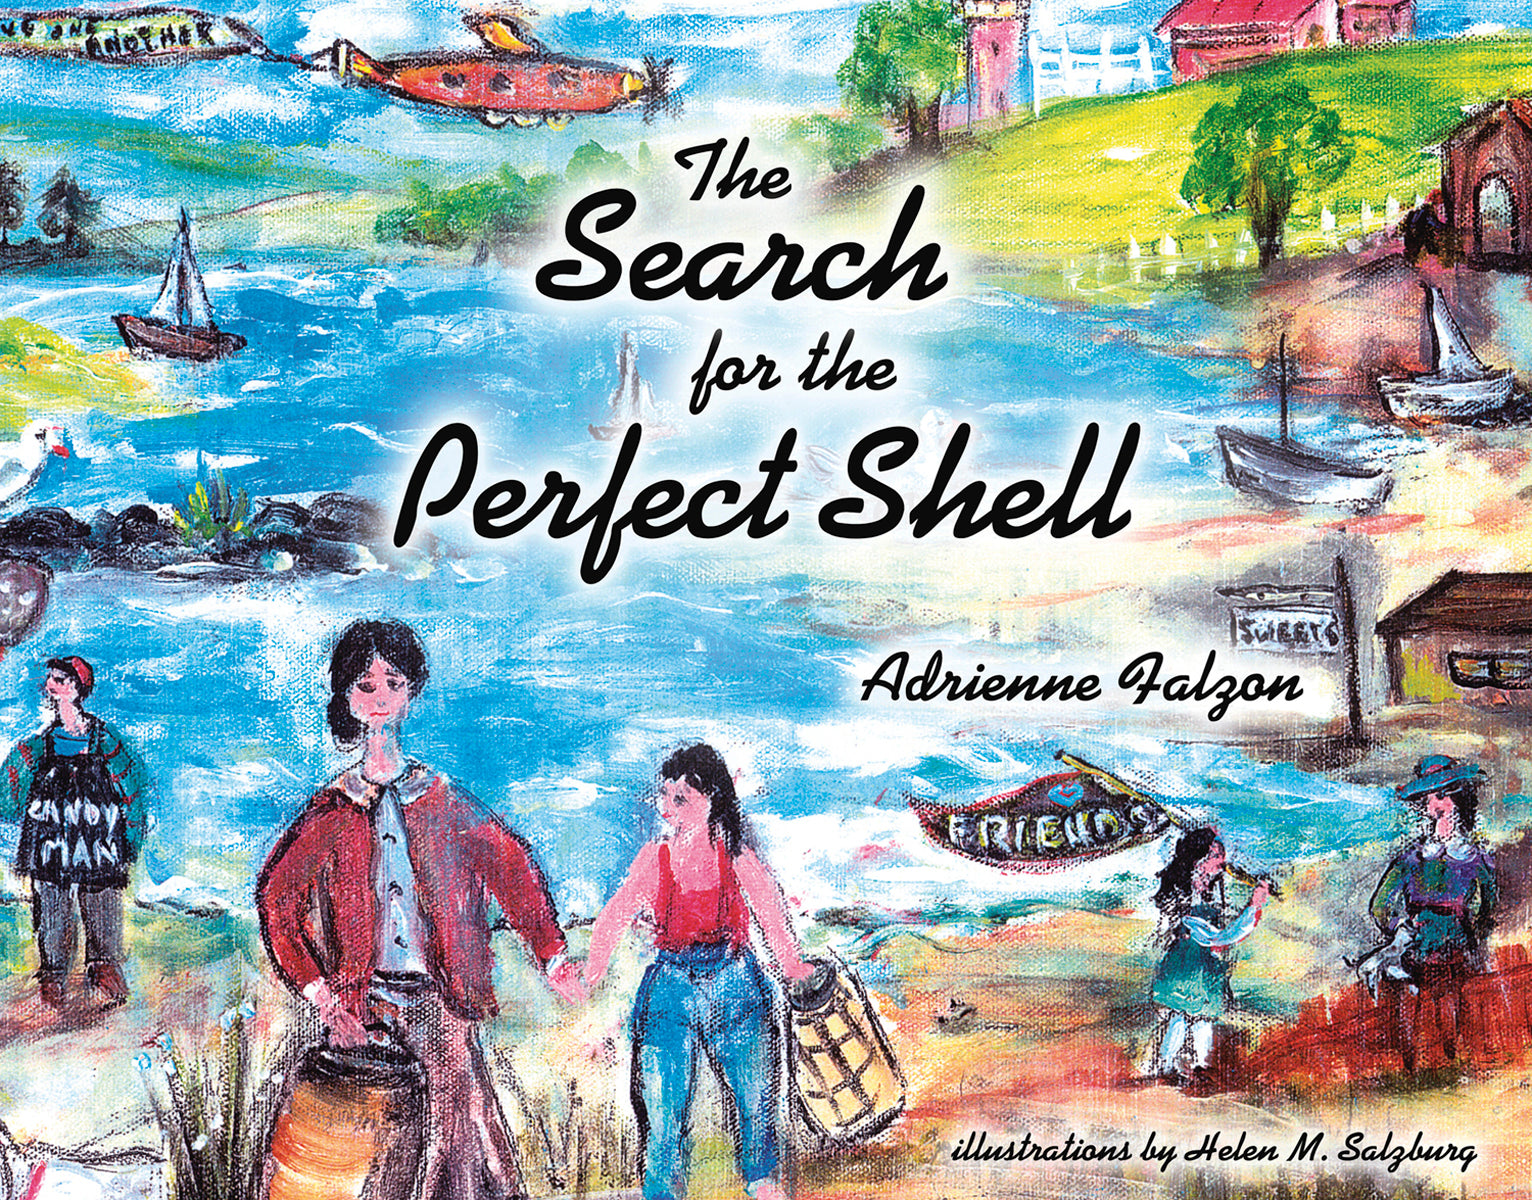 The Search For The Perfect Shell, Adrienne Falzon - Blue Note Publications, Inc